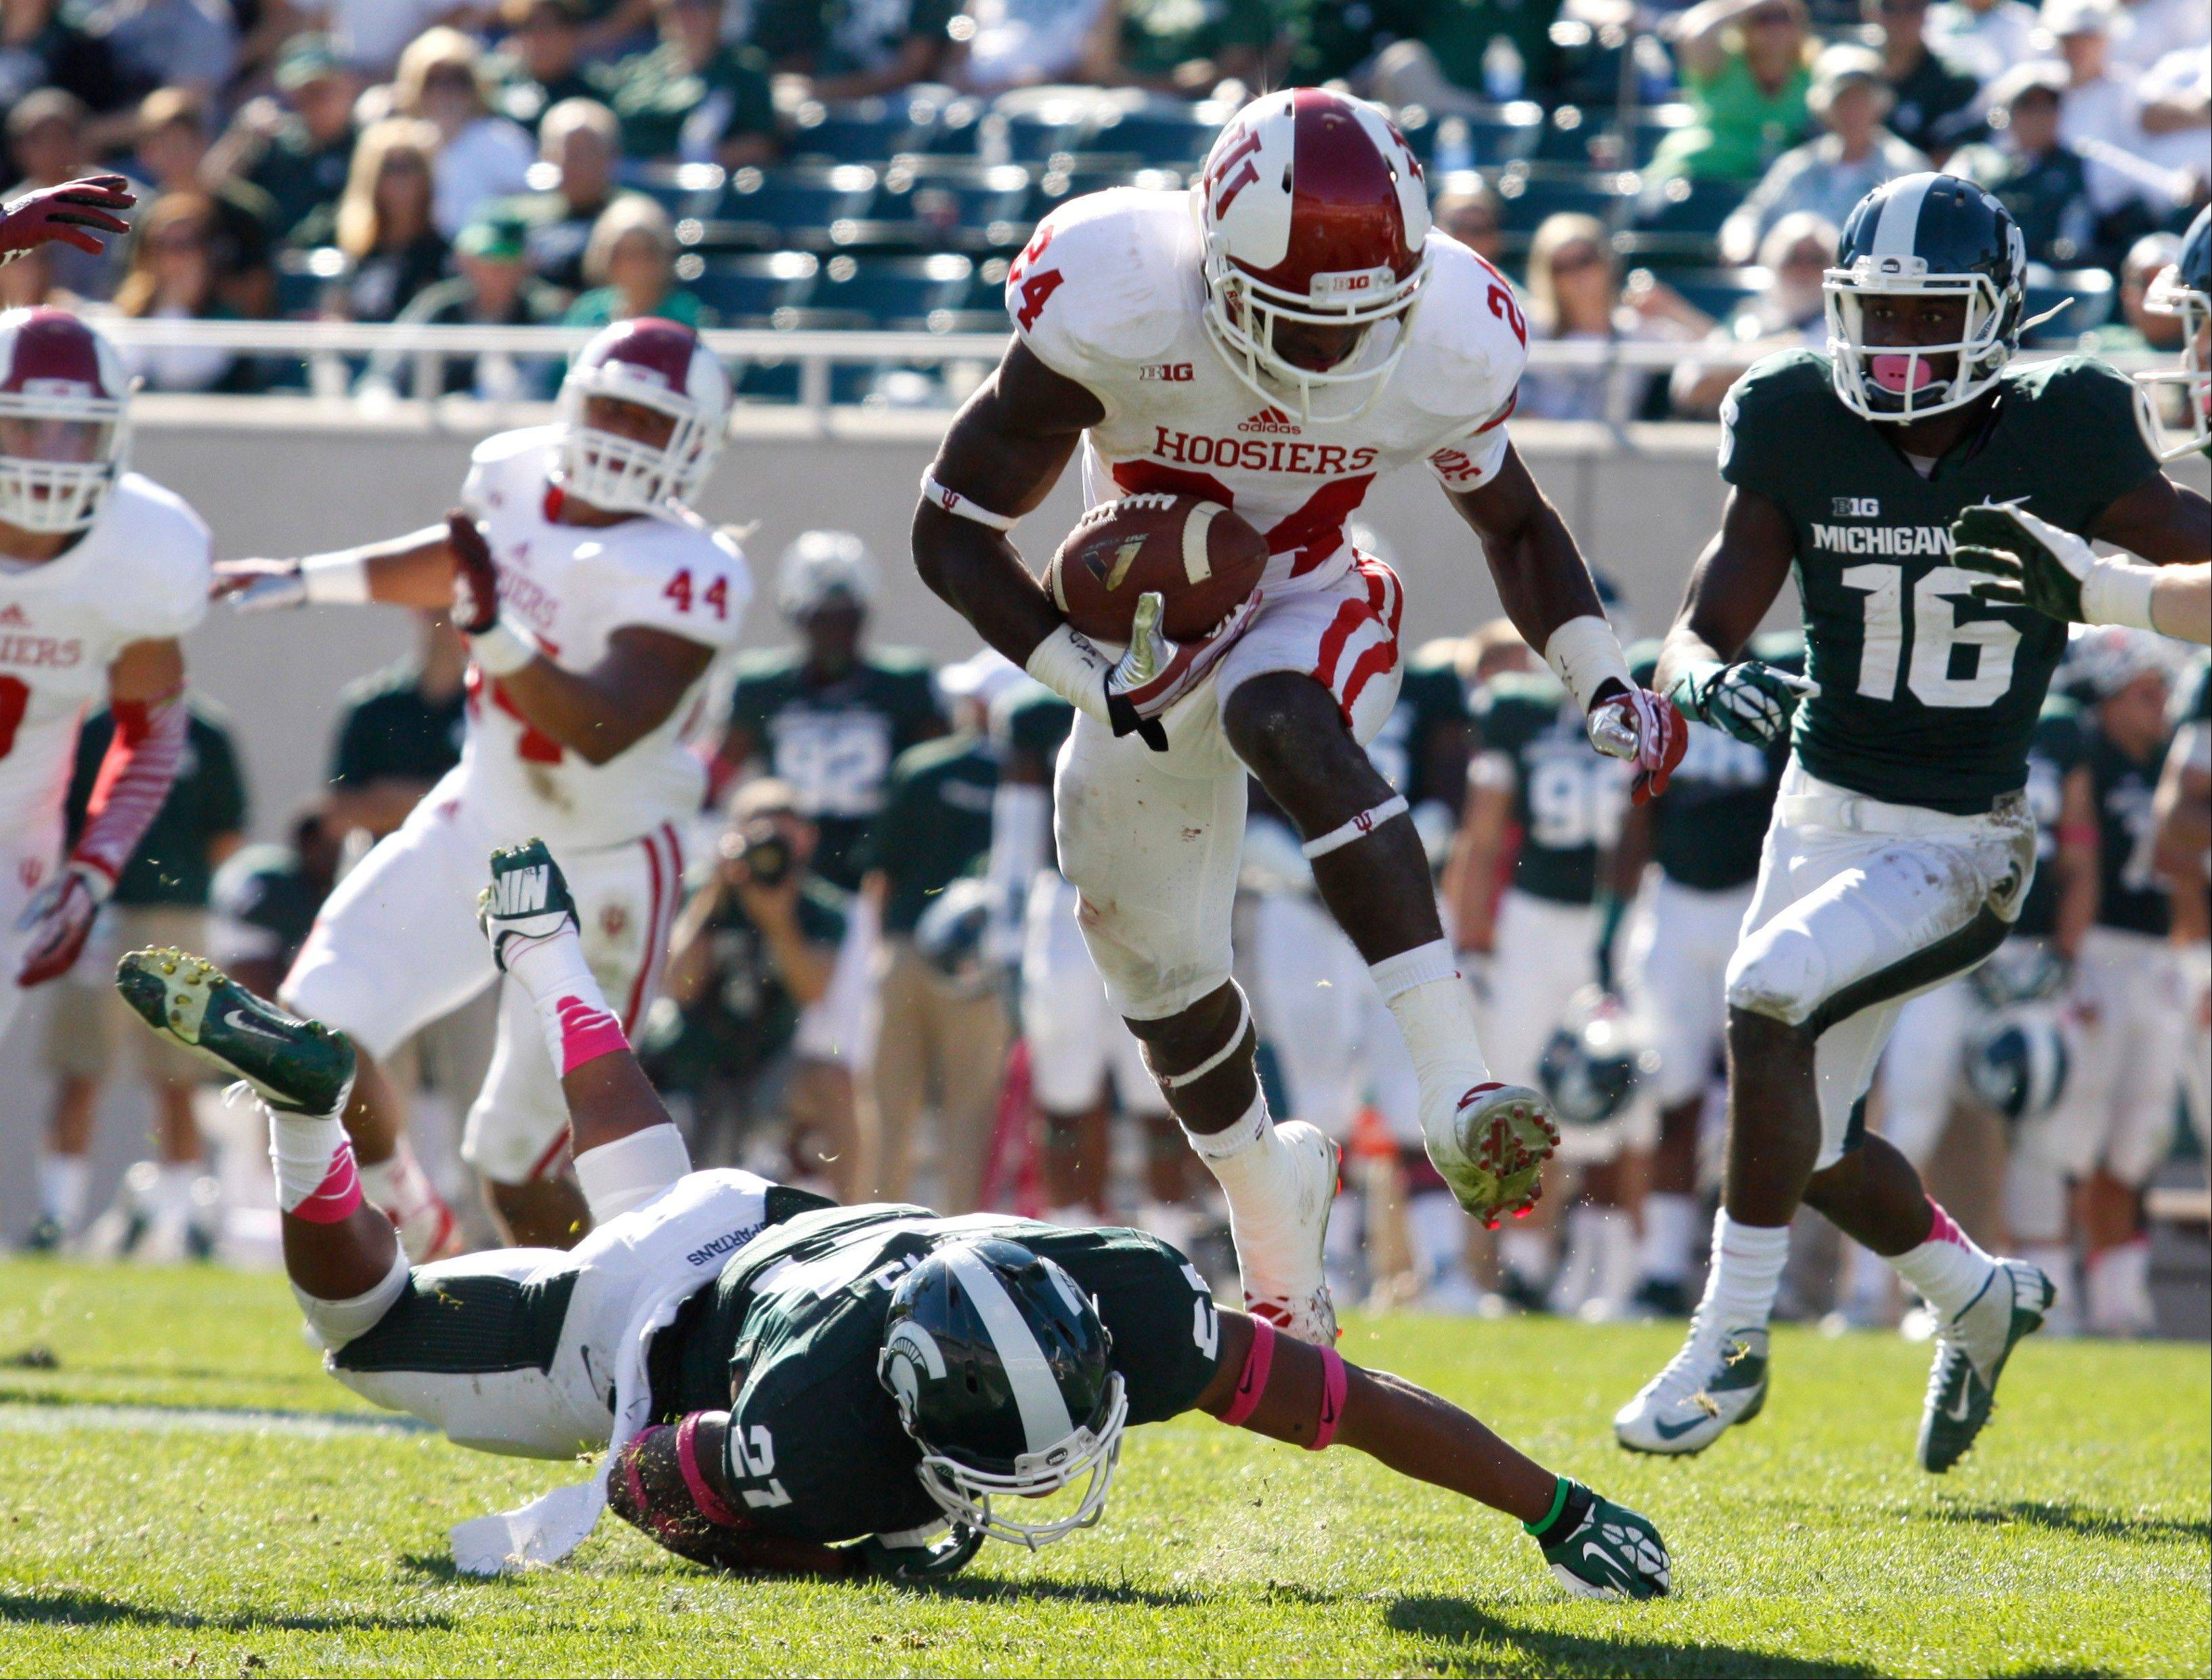 Indiana cornerback Tim Bennett hurdles Michigan State receiver Andre Sims Jr. while returning an interception during the fourth quarter of Saturday�s game in East Lansing, Mich. Michigan State won 42-28.